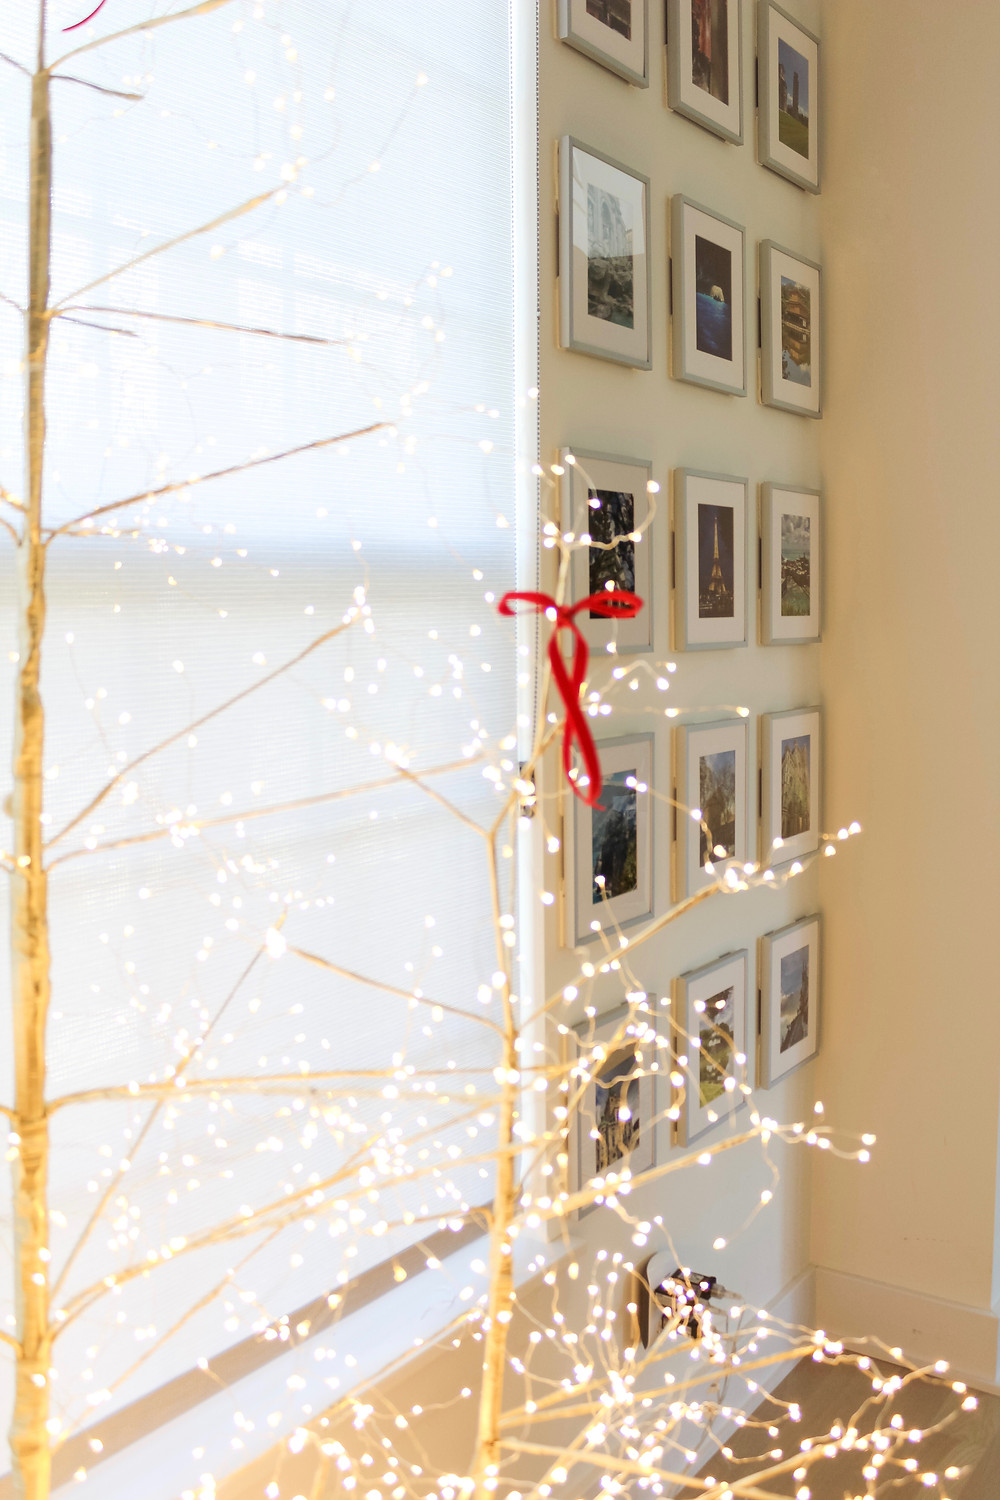 Cozy Modern Holiday Home Tour. Filled with red, gold, white and neutral christmas trees. You can find decor filled with whimsical lights, ribbon and stunning picks. #bhghome #holidayhome #holidayinspiration #holidayhomedecor